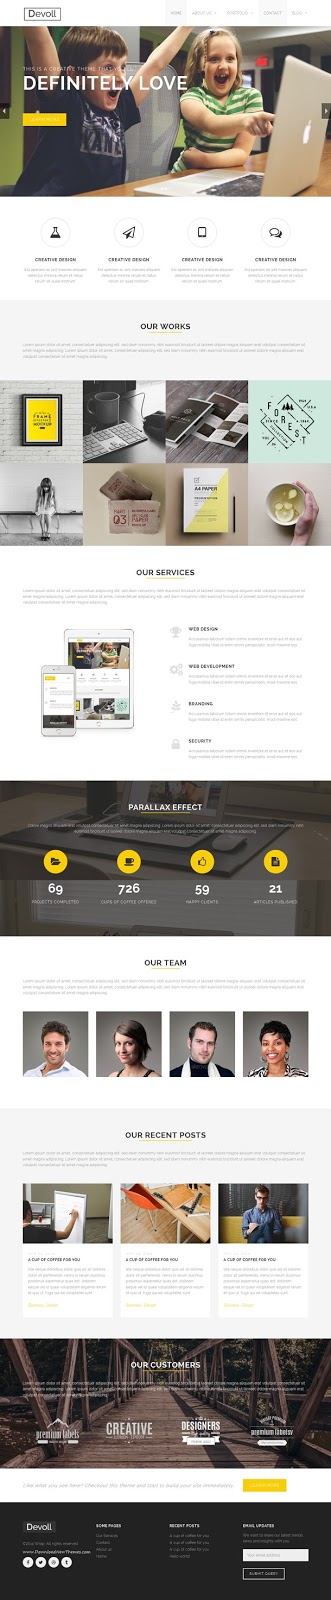 Devoll Multipurpose WordPress Theme